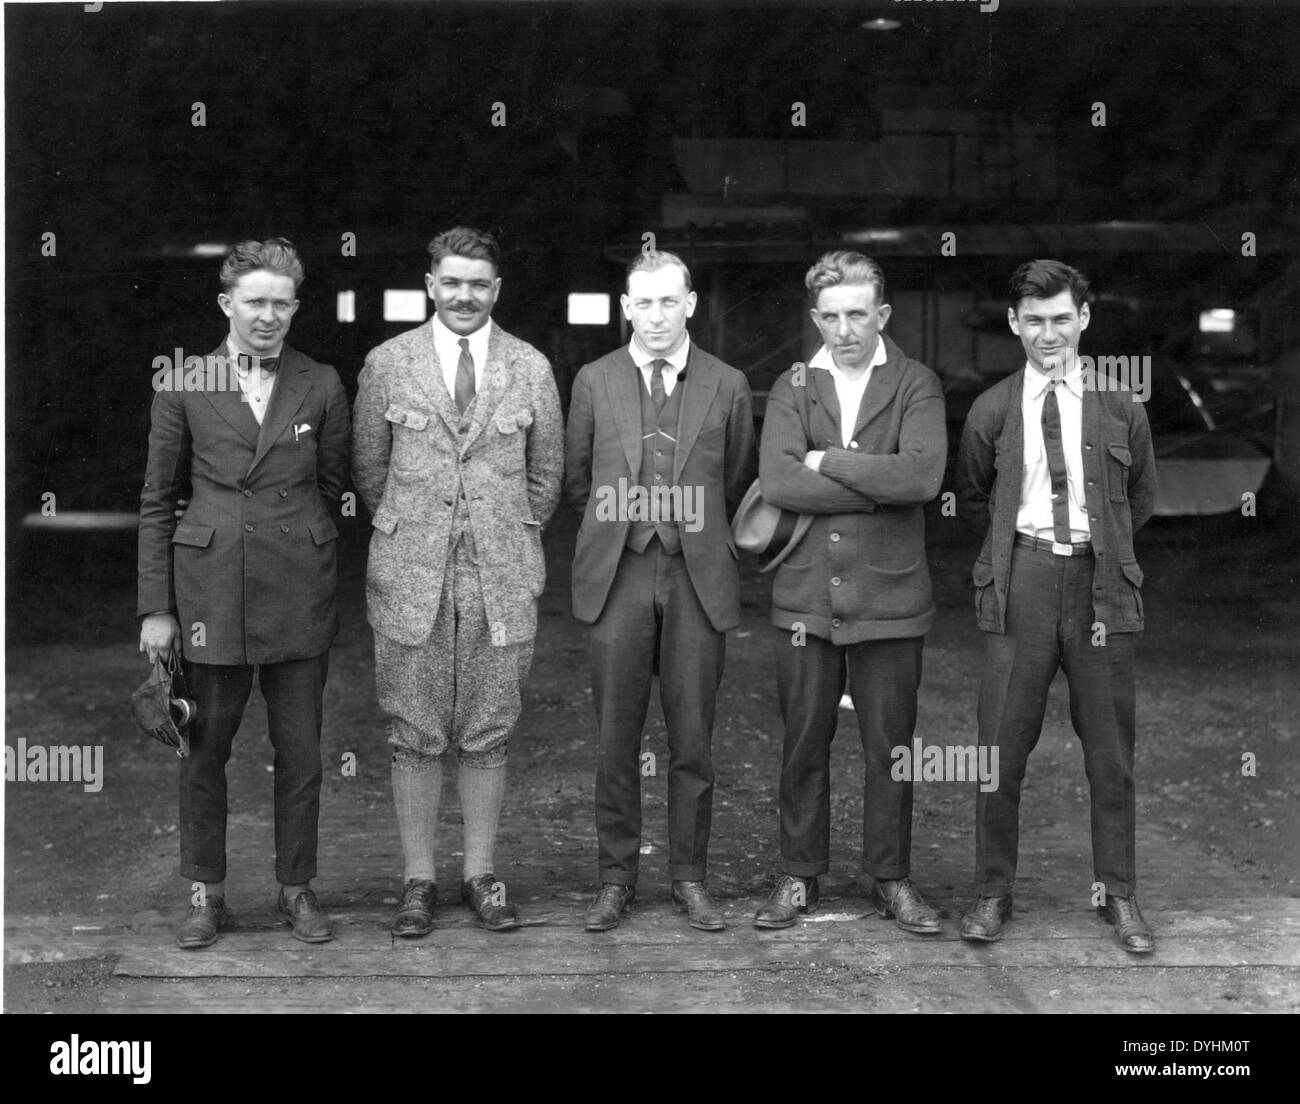 E.G. Leonhardt Special Collection Photo Leonhardt front center with W.L. Smith left of Leonhardt with group of men in front of a hangar (cropped version) - Stock Image